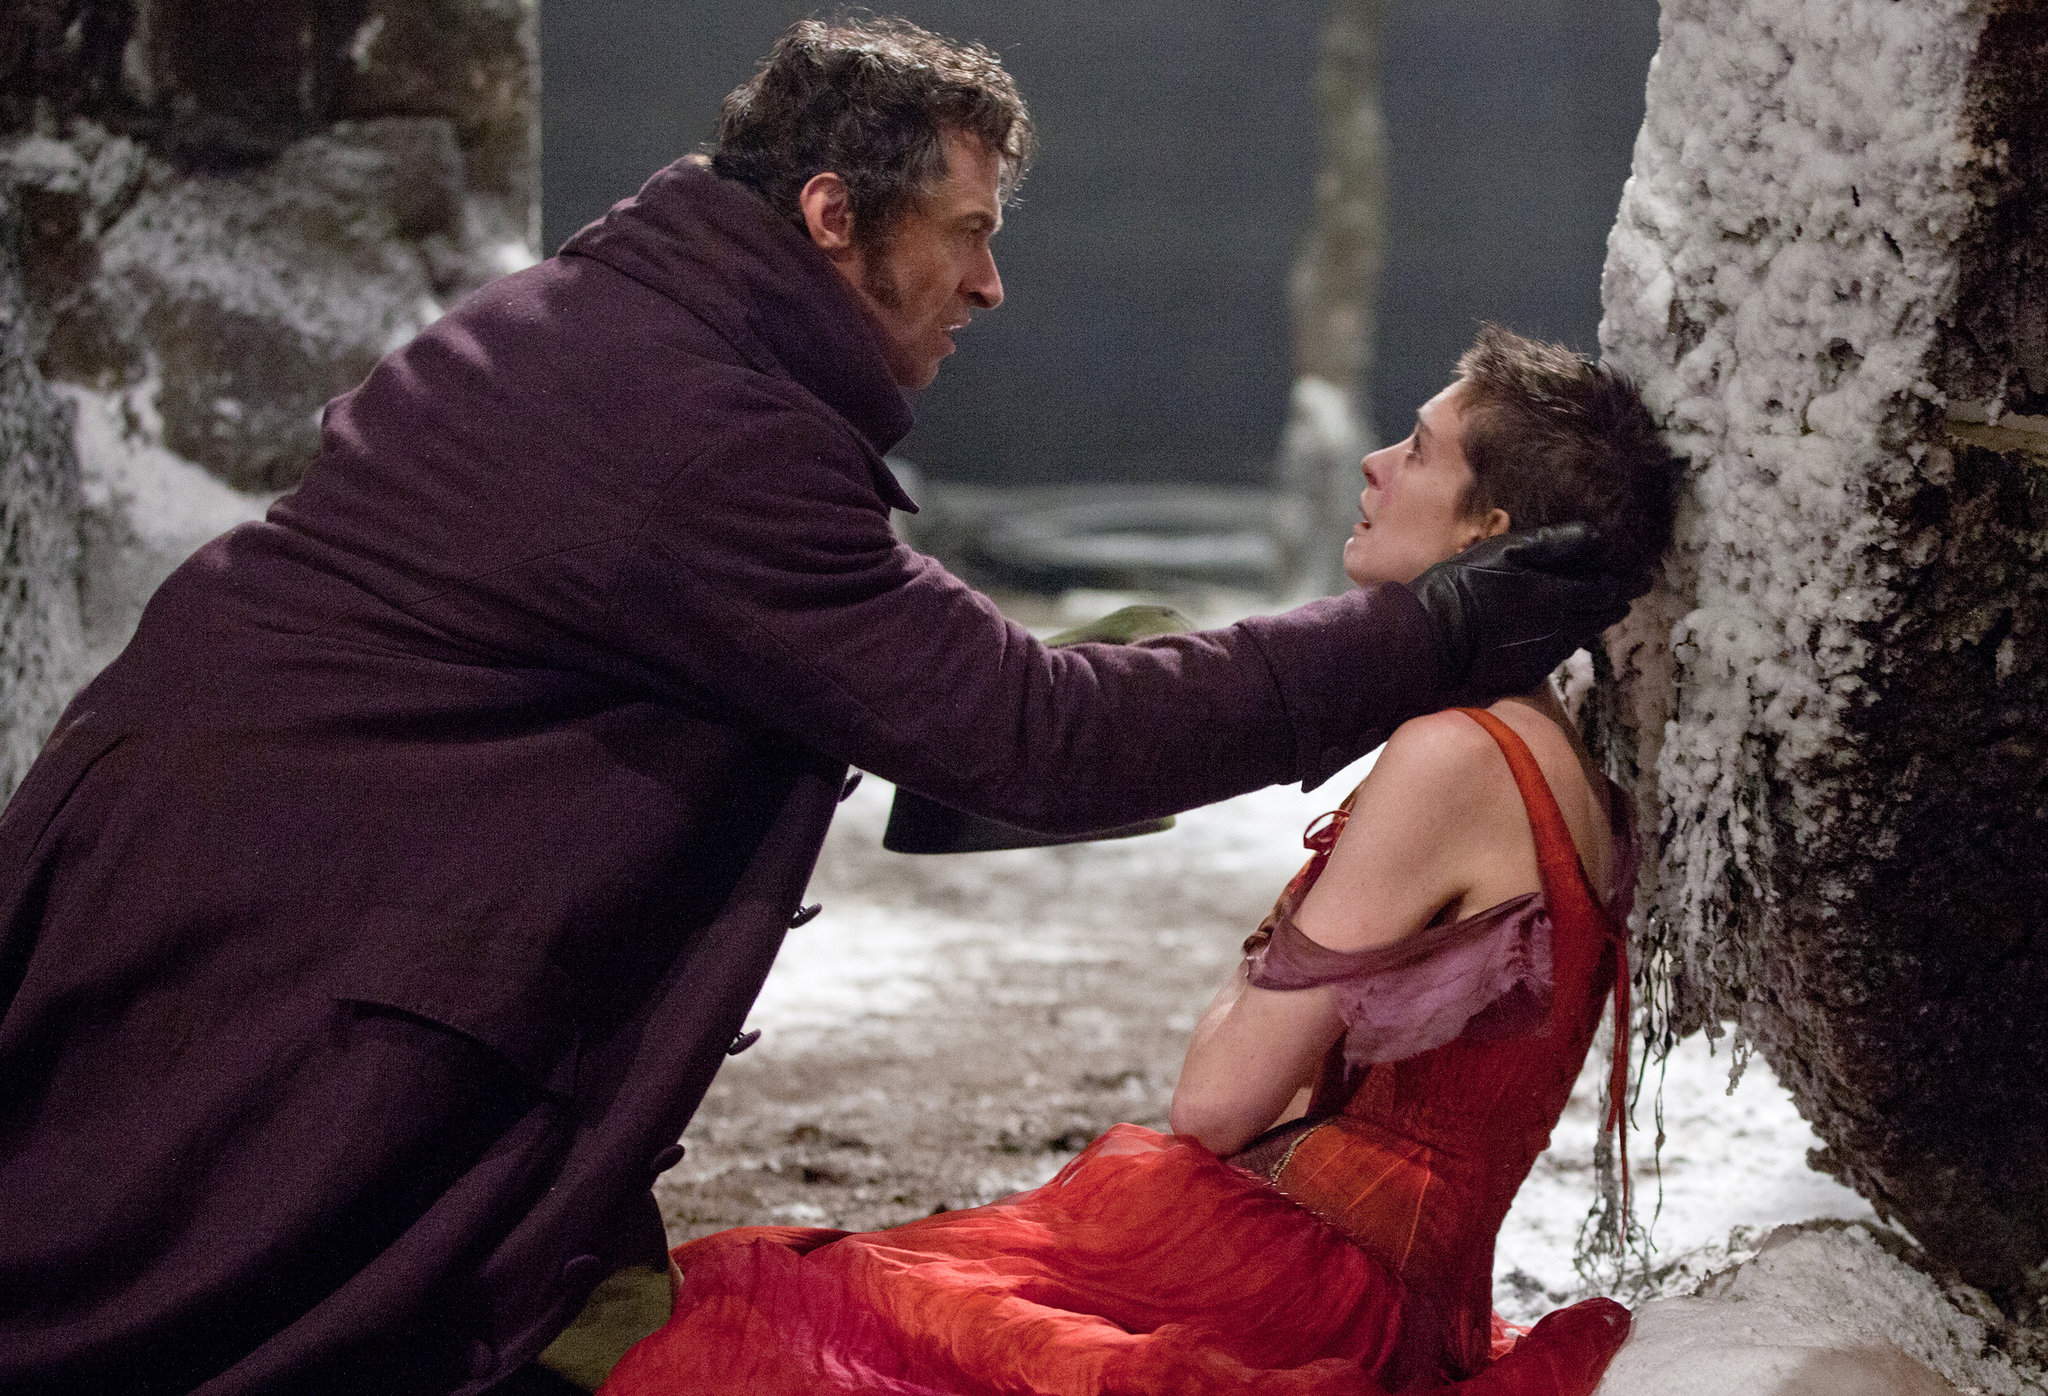 MISERABLES superJumbo v2 25 Things You Didn't Know About Les Misérables (2012)